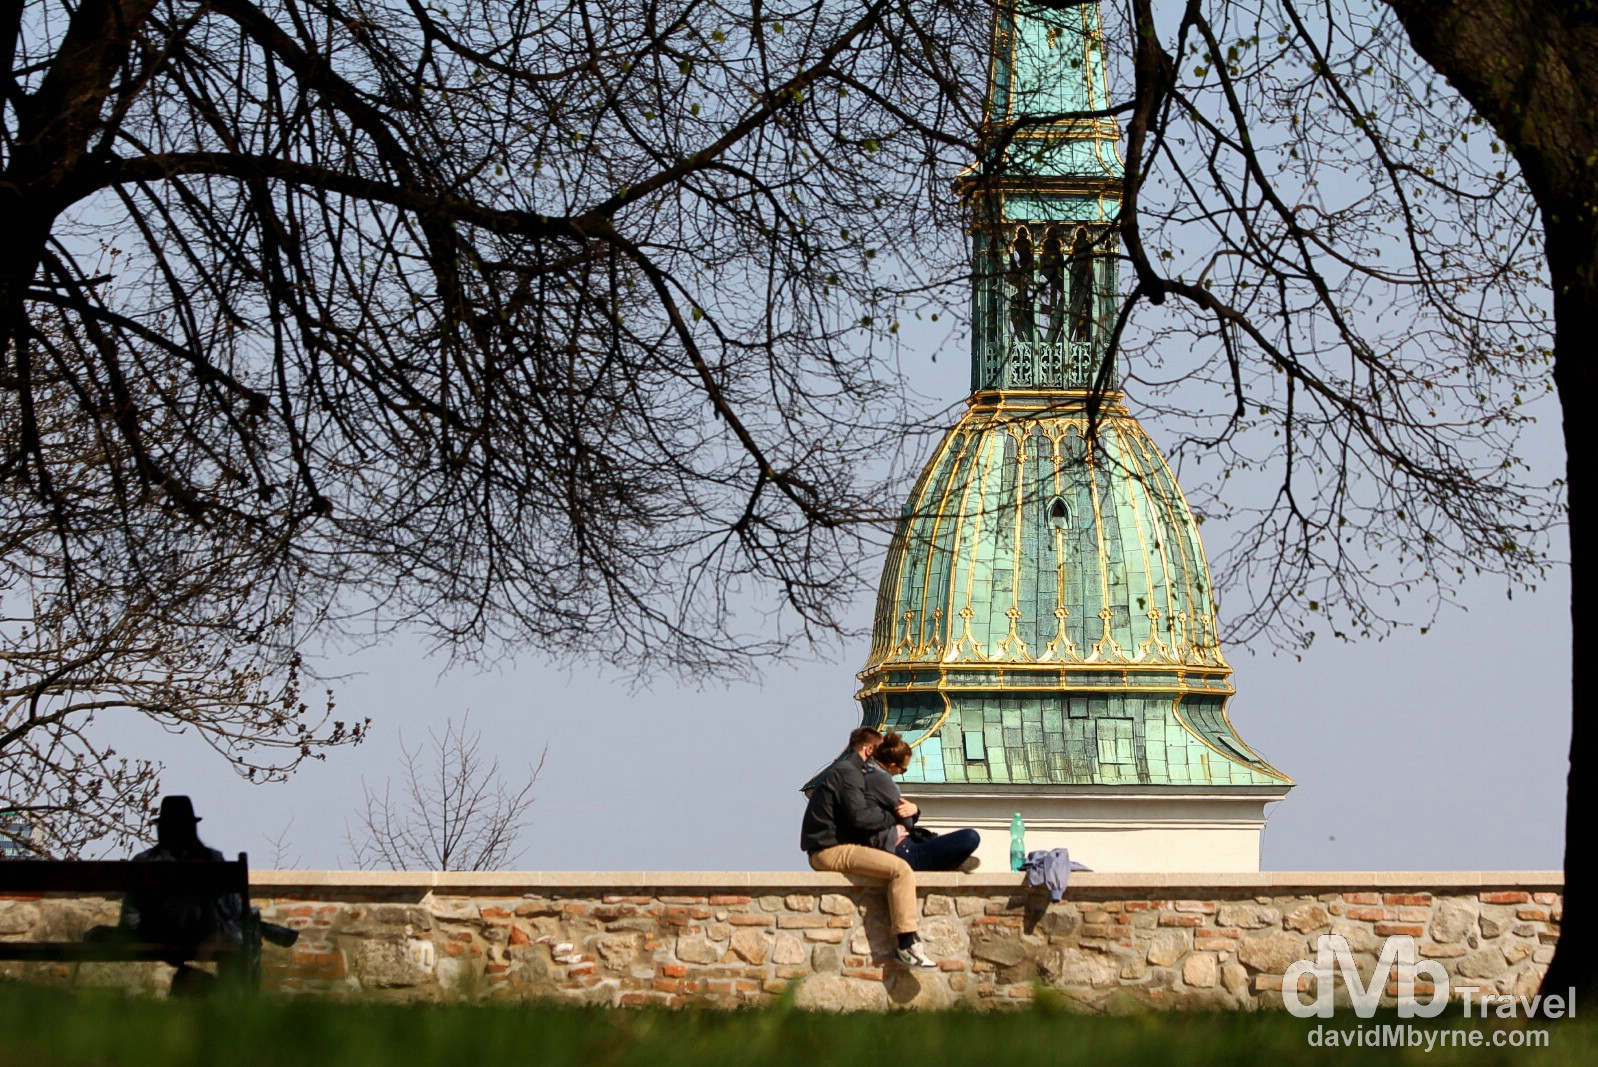 In the grounds of Bratislava Castle with the spire of Dom Sv. Martina (St. Martin's Cathedral), the city's most important church, in the background. Bratislava, Slovakia. March 28th, 2014.